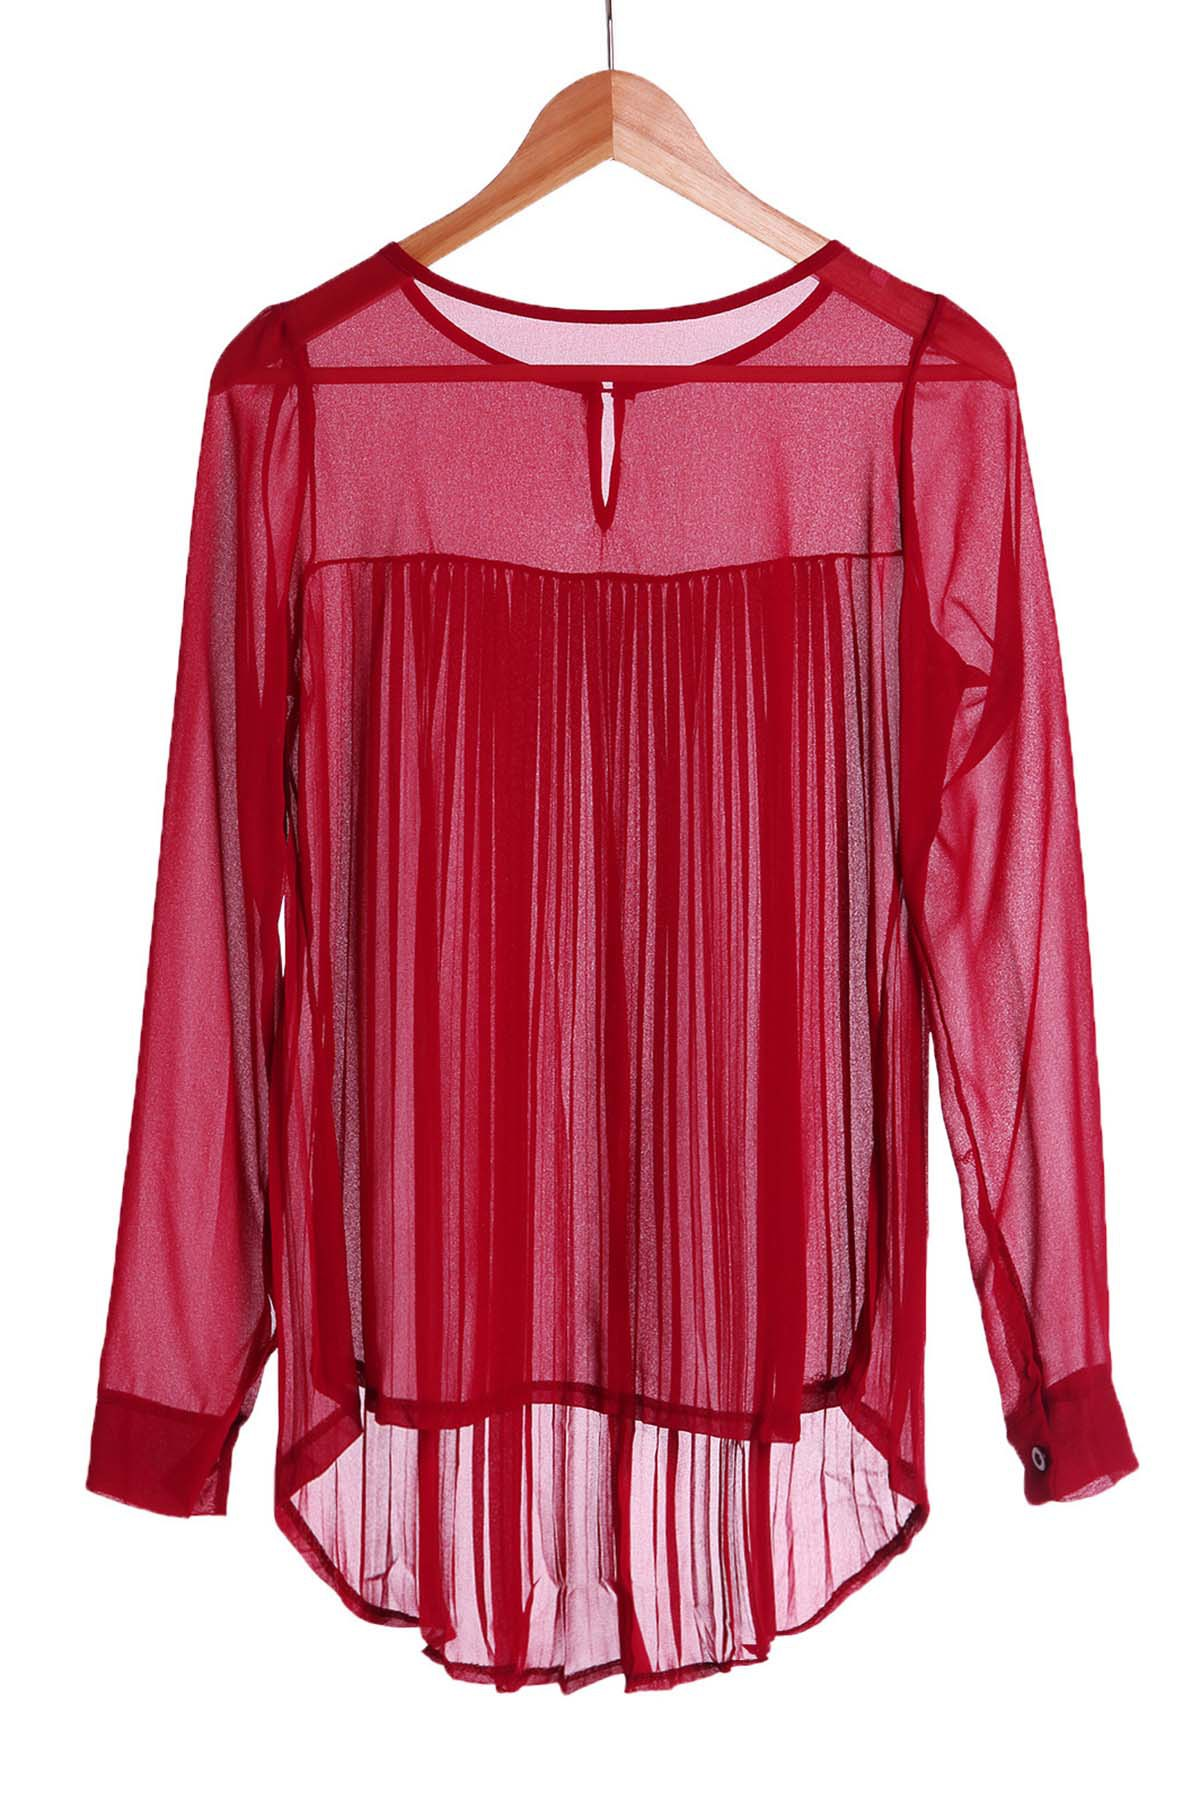 Stylish Women's Round Neck Long Sleeve Pleated Chiffon Blouse - WINE RED S